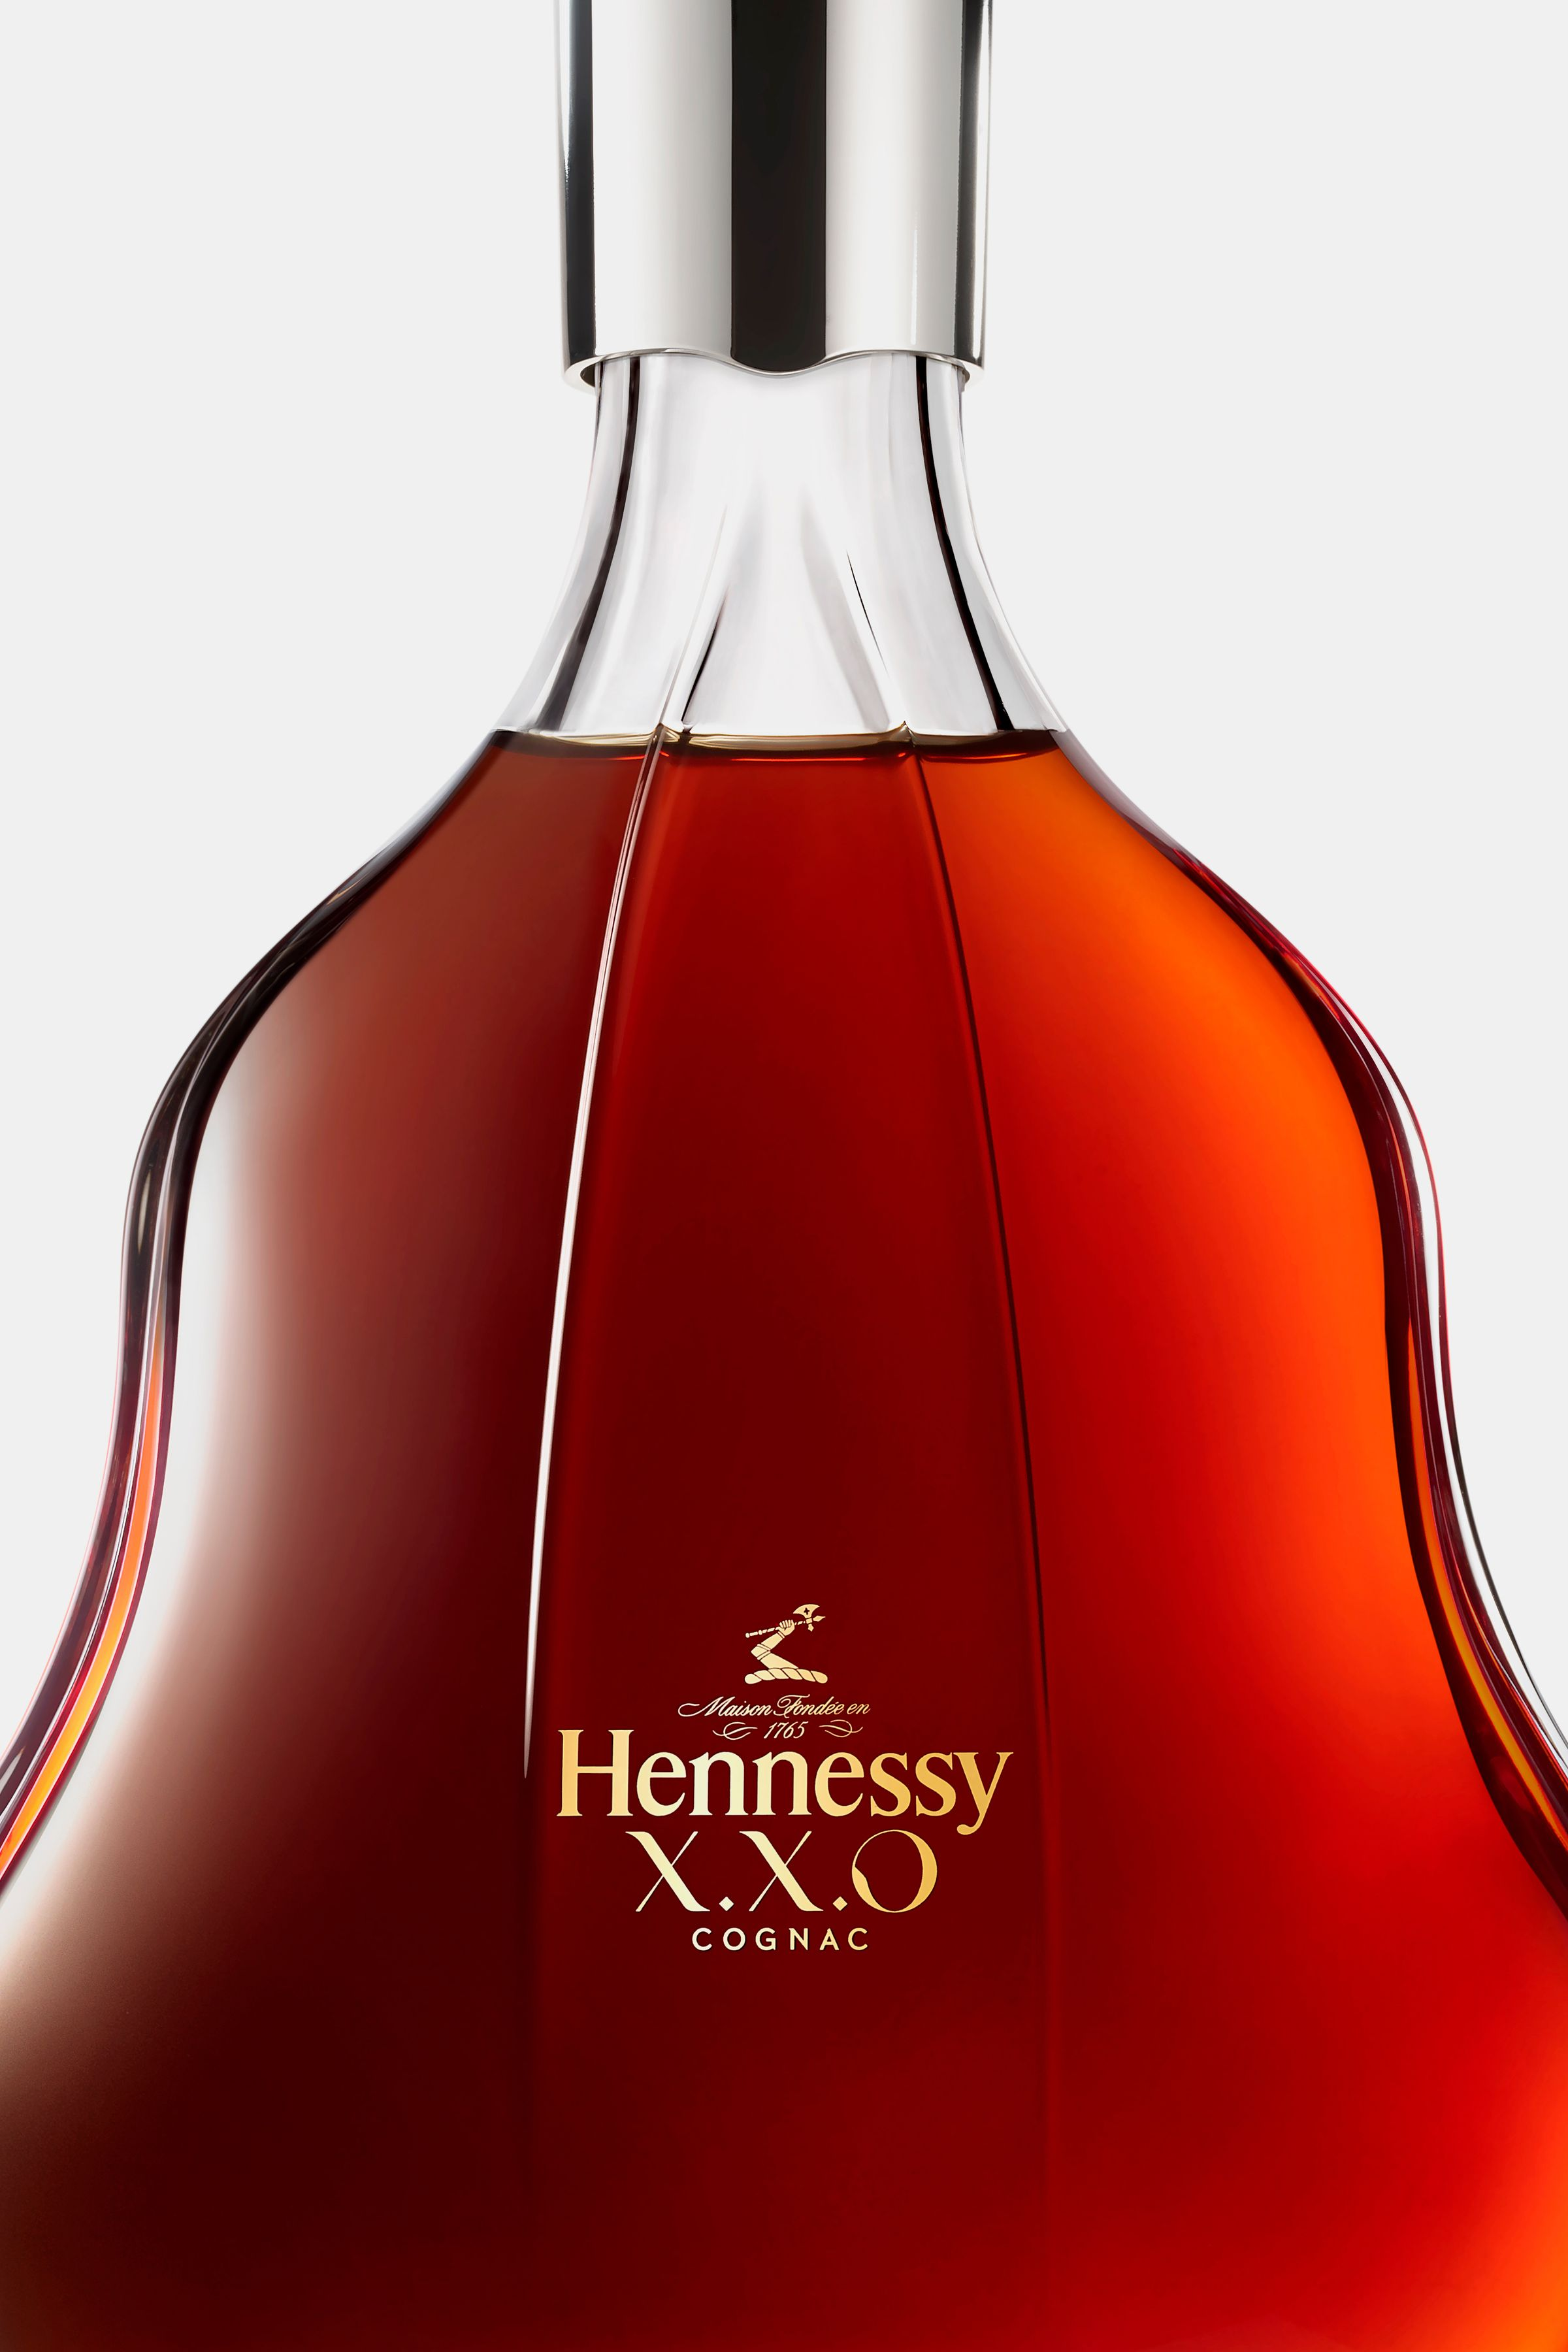 Hennessy XXO logo design applied to bottle